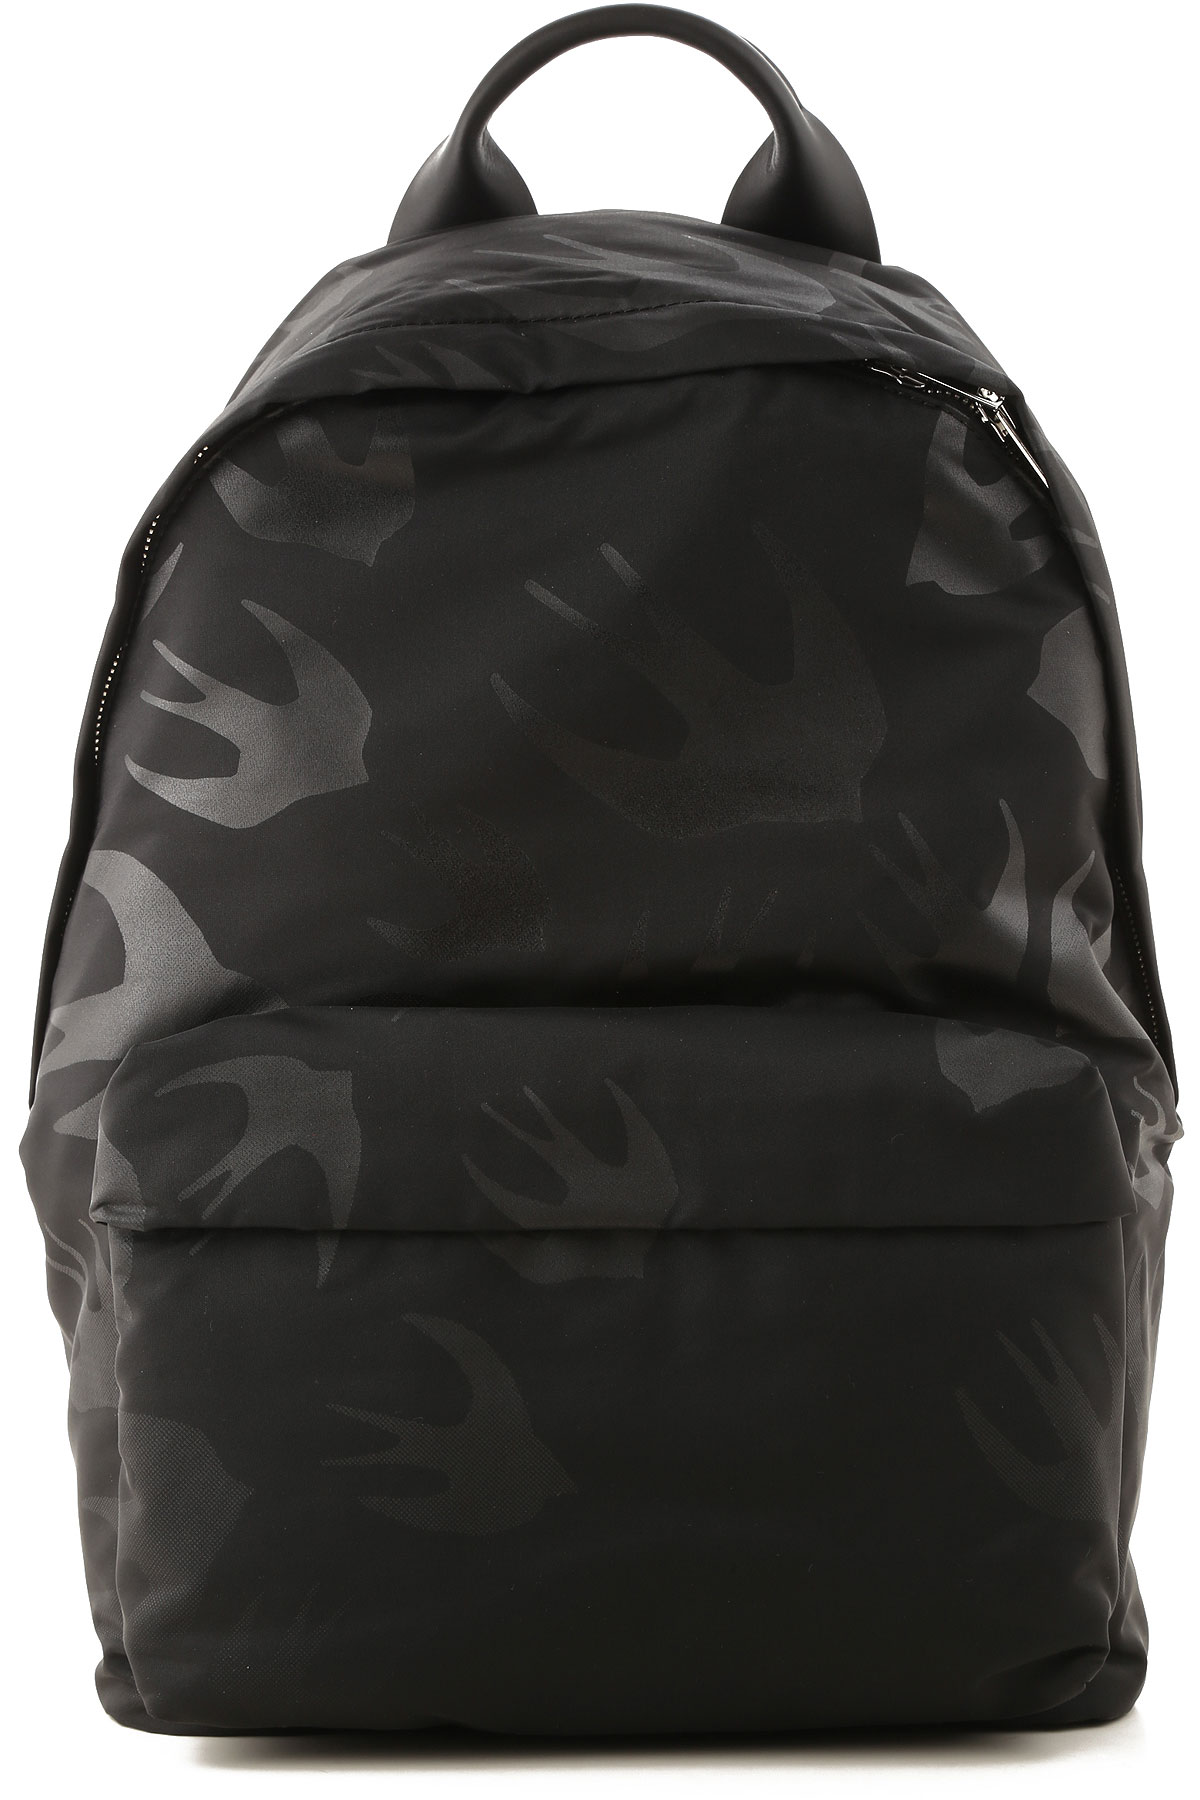 Alexander McQueen McQ Backpack for Men On Sale, Black, polyester, 2019